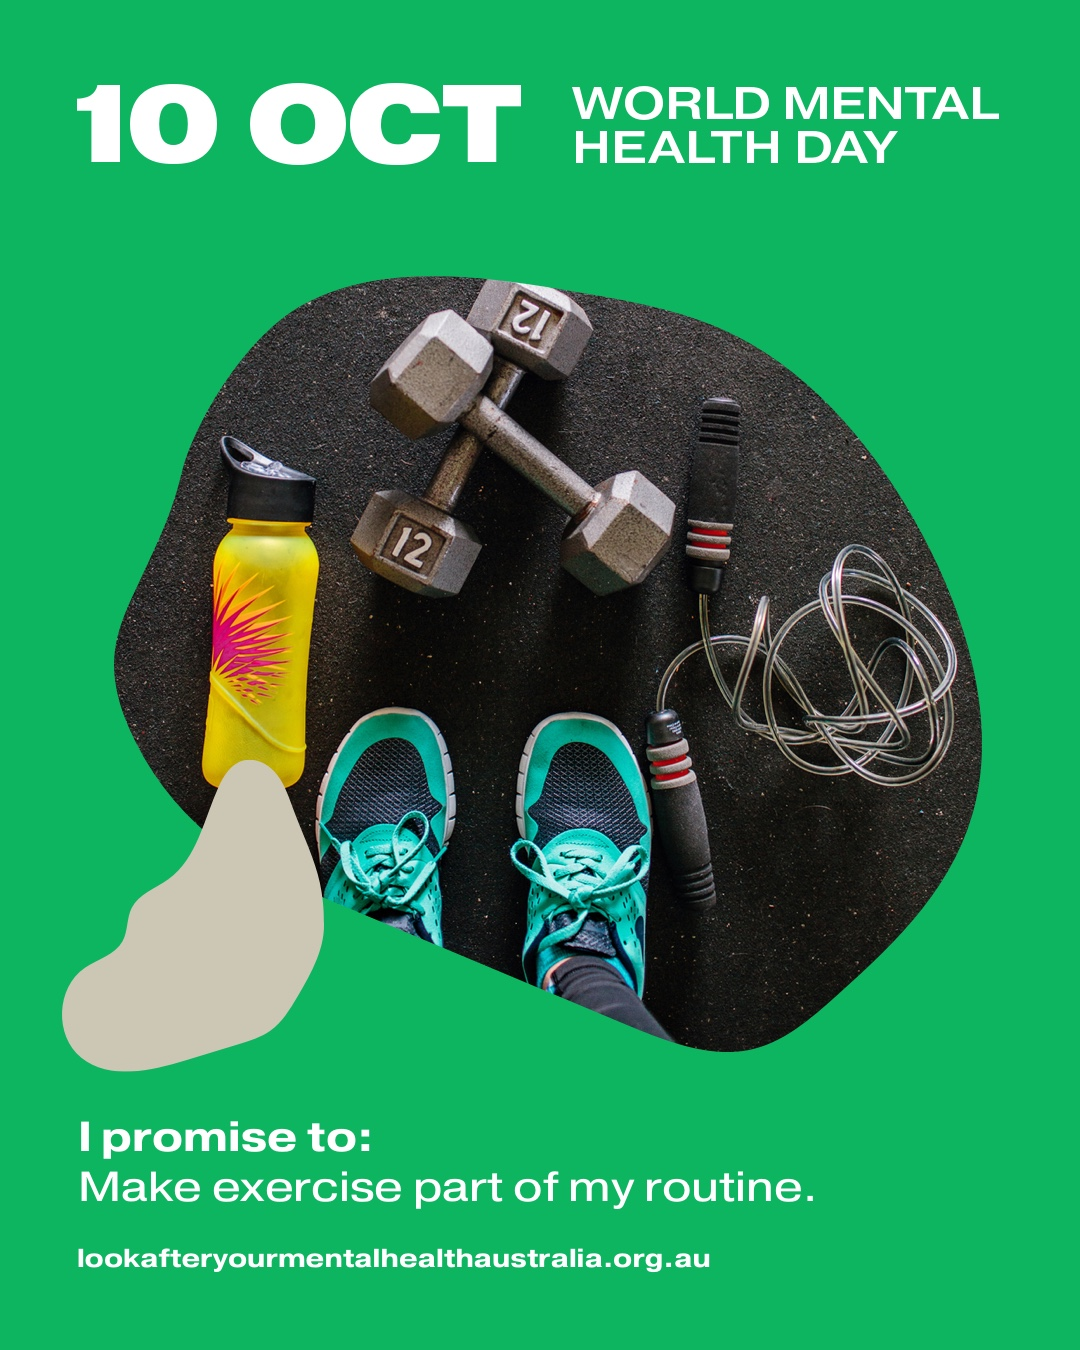 I promise to: Make exercise part of my routine.